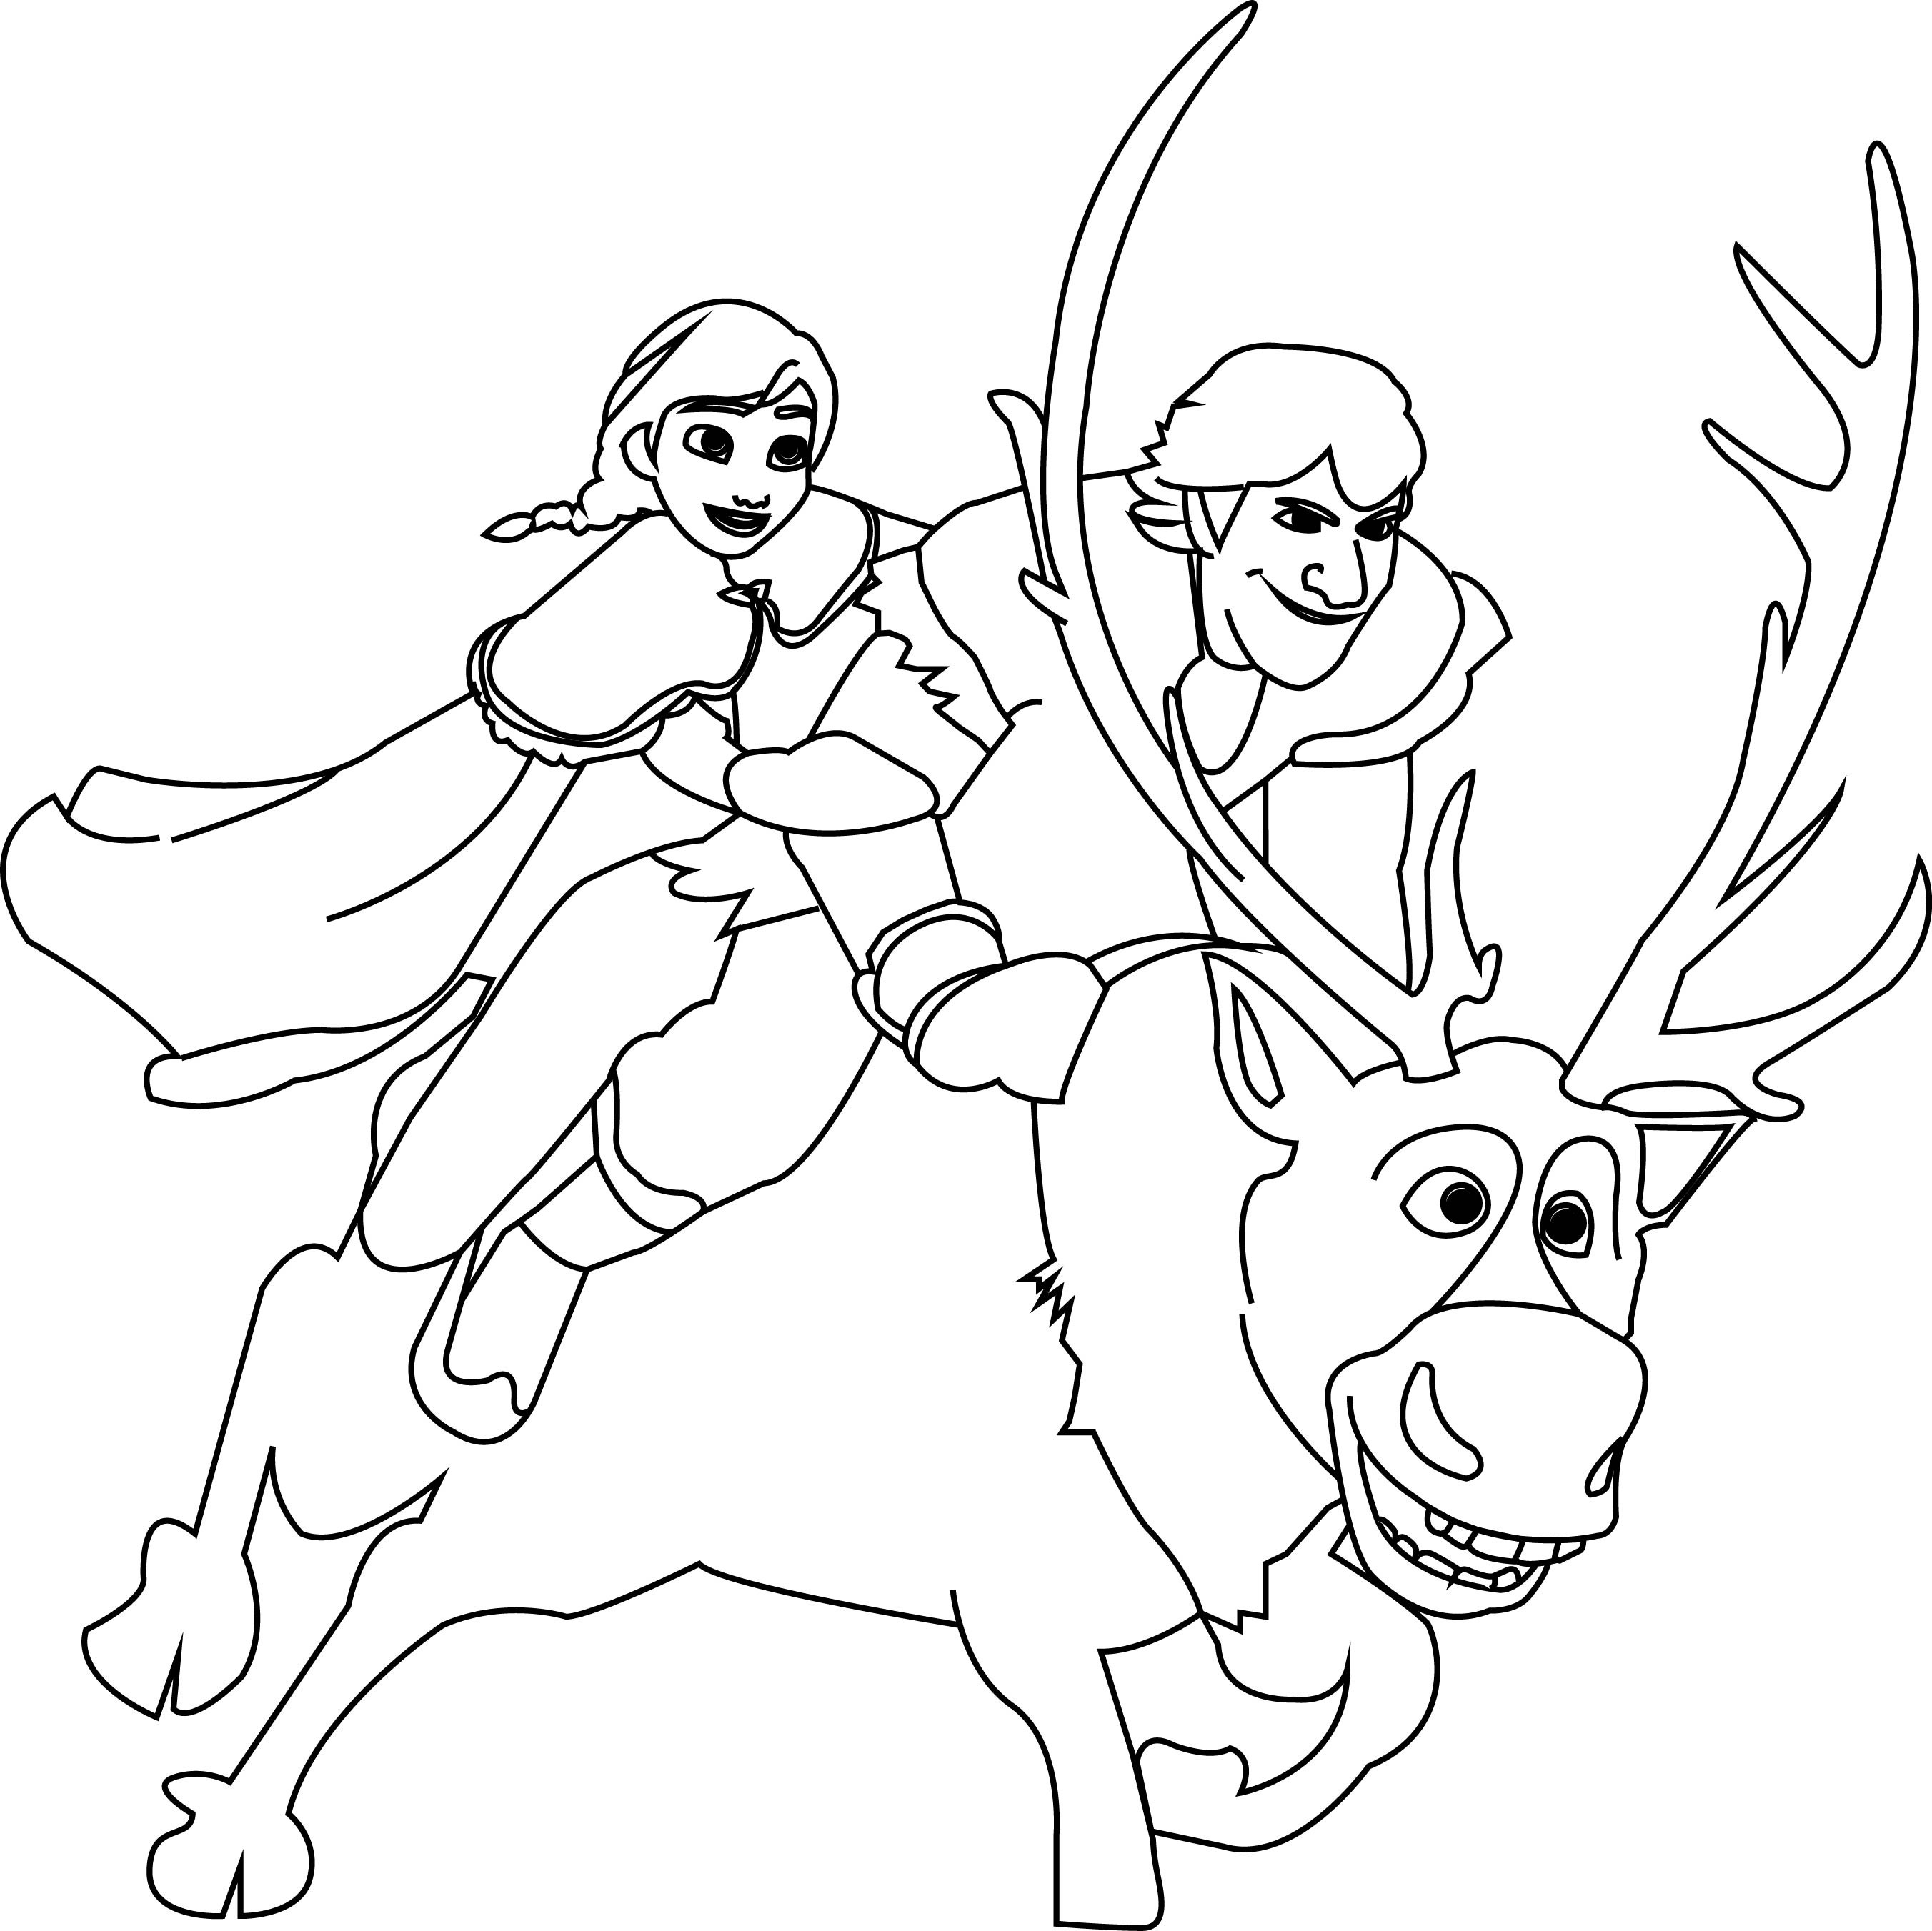 Olaf And Sven Coloring Pages At Getdrawings Com Free For